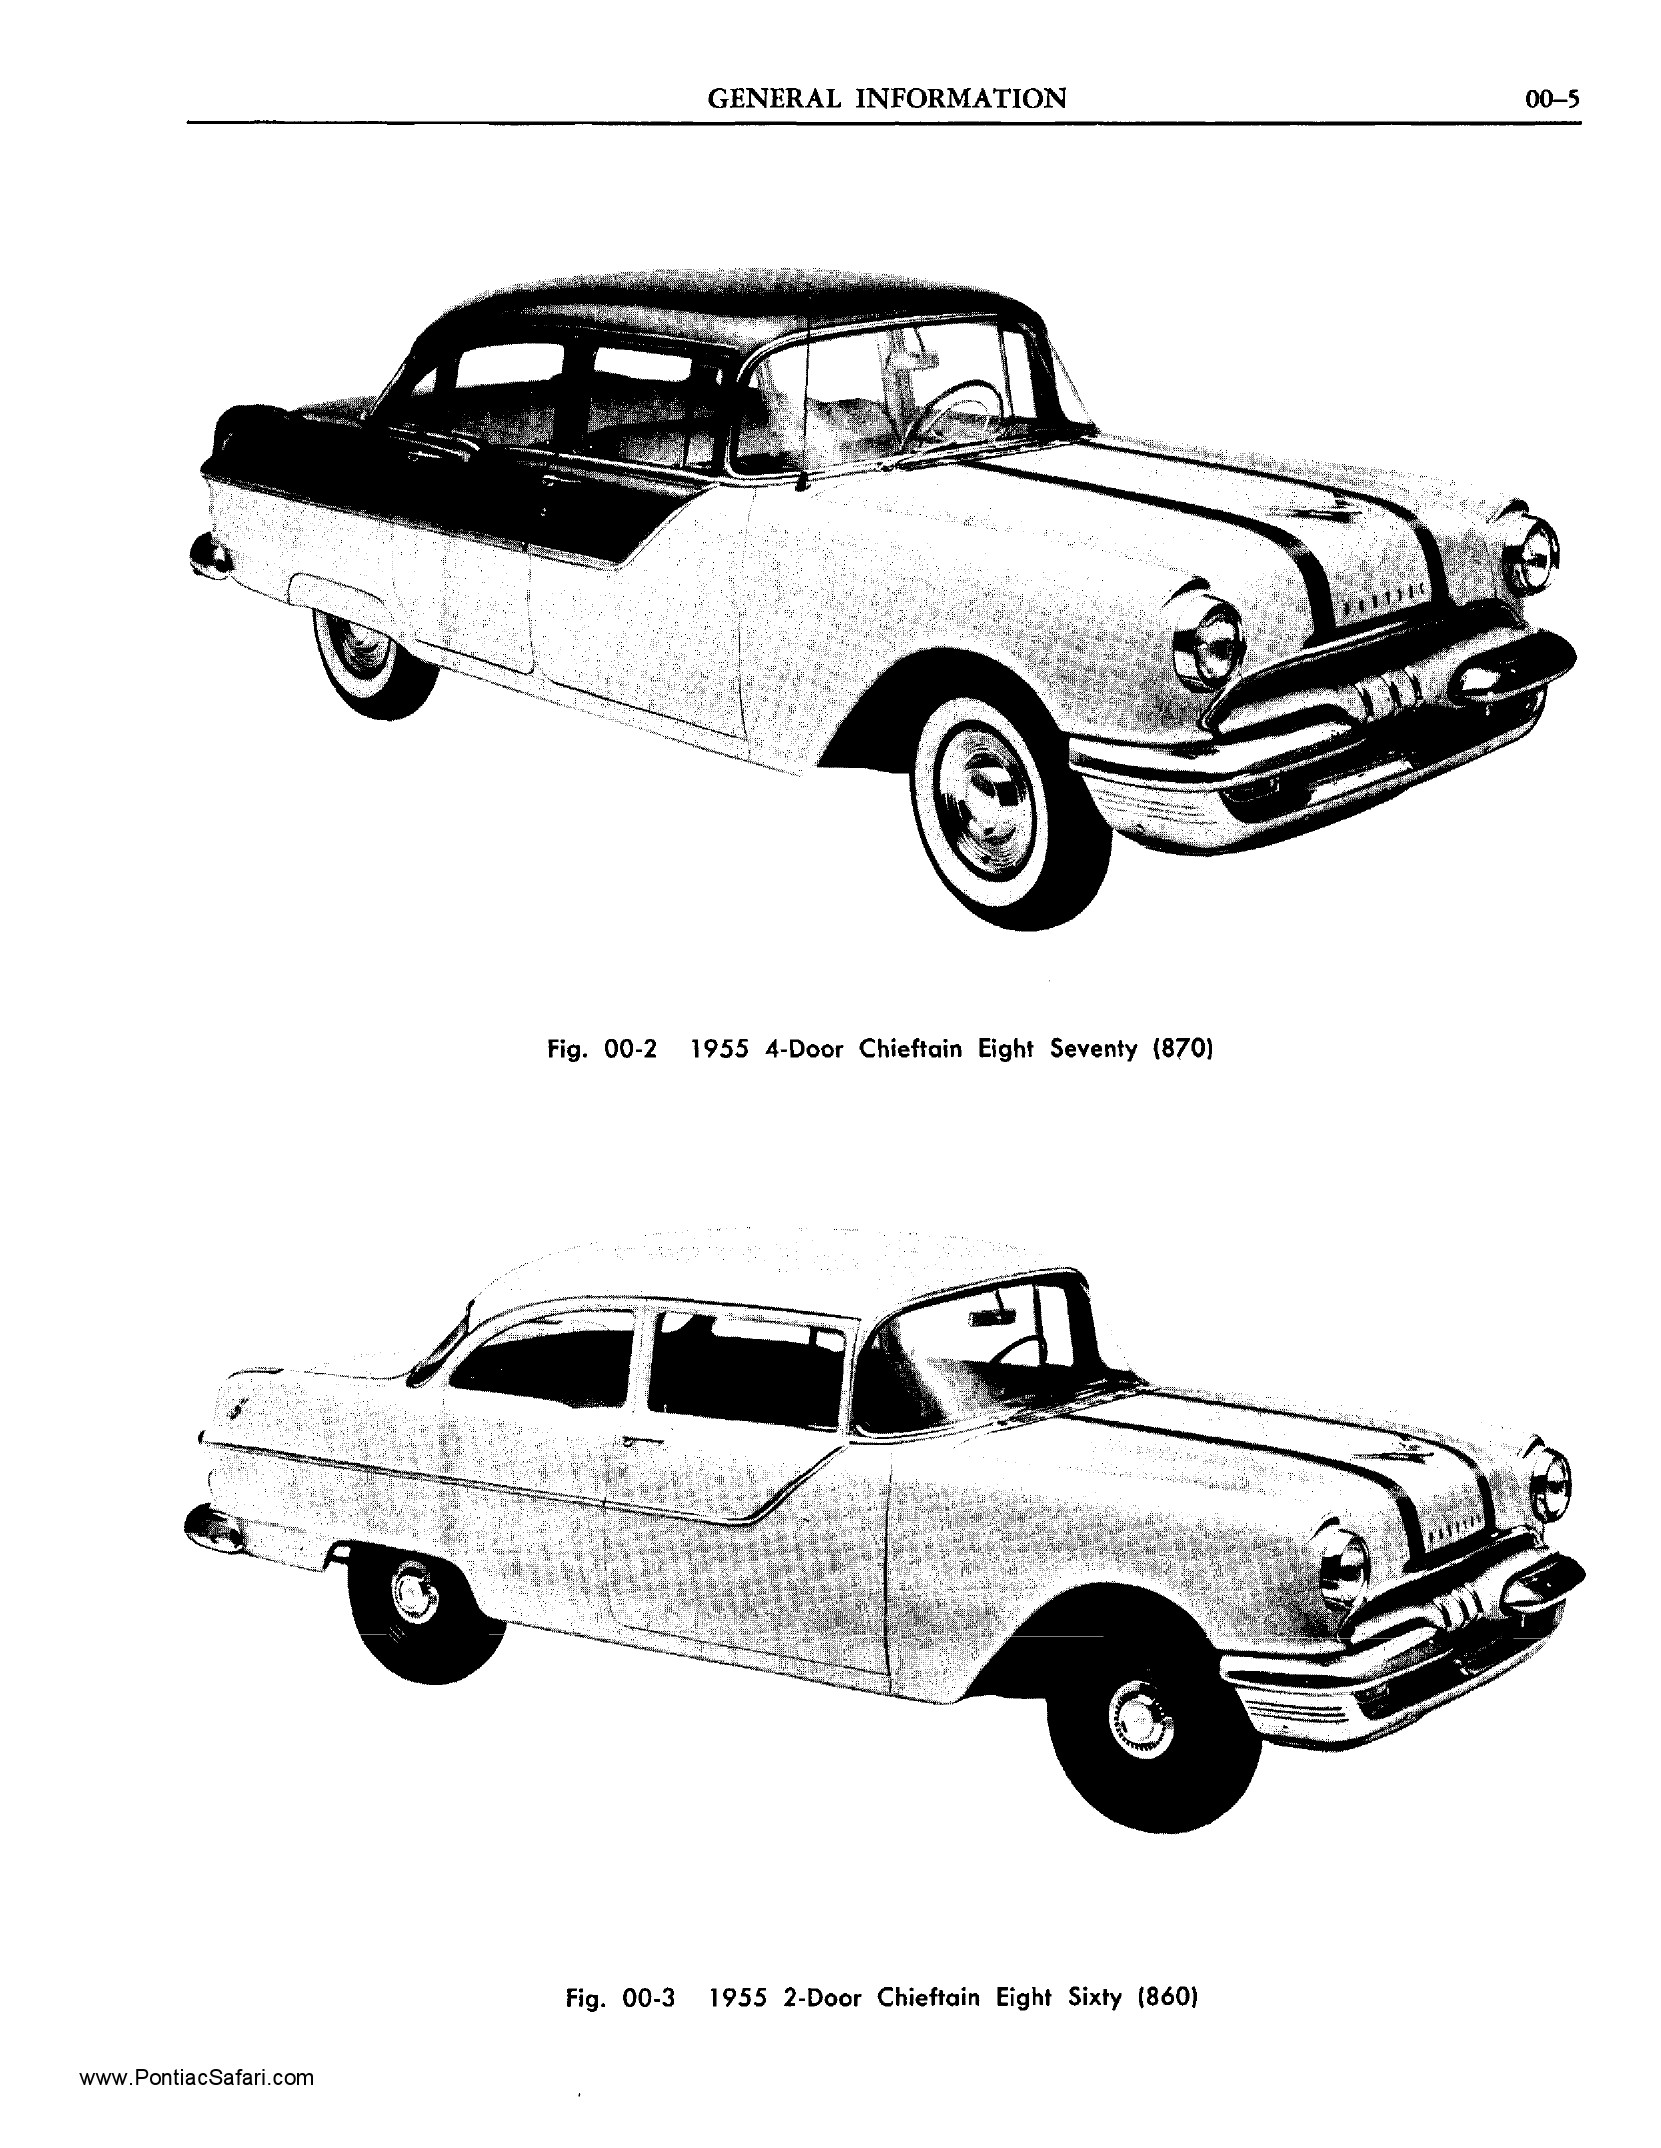 1955 Pontiac Shop Manual- Contents, Models Page 5 of 9